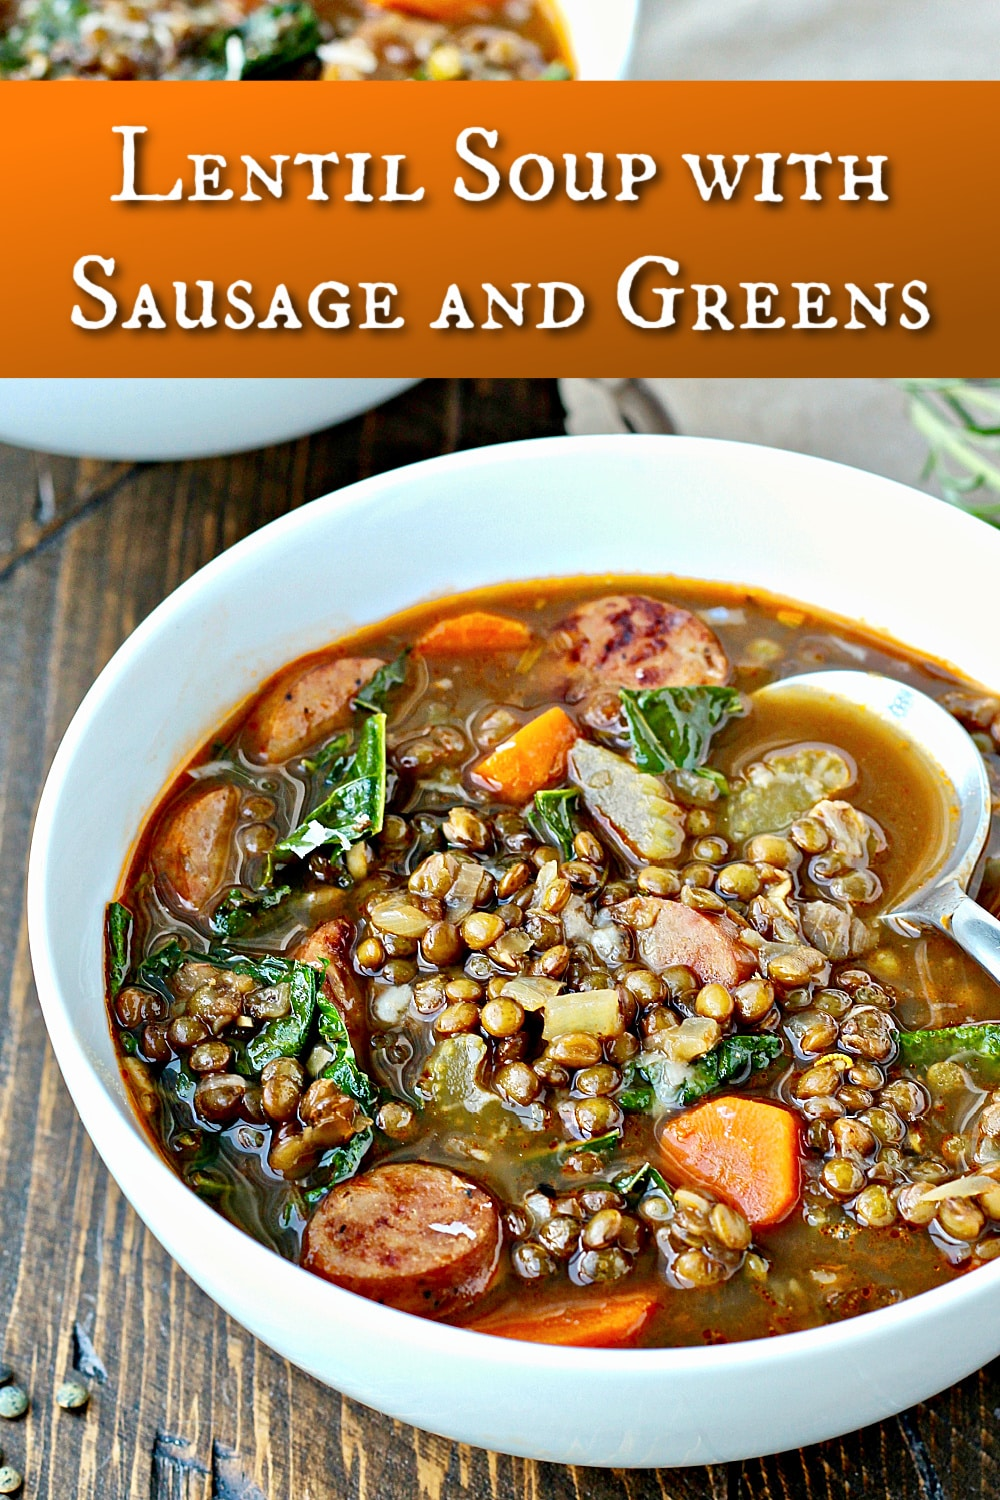 Lentil Soup with Sausage and Greens